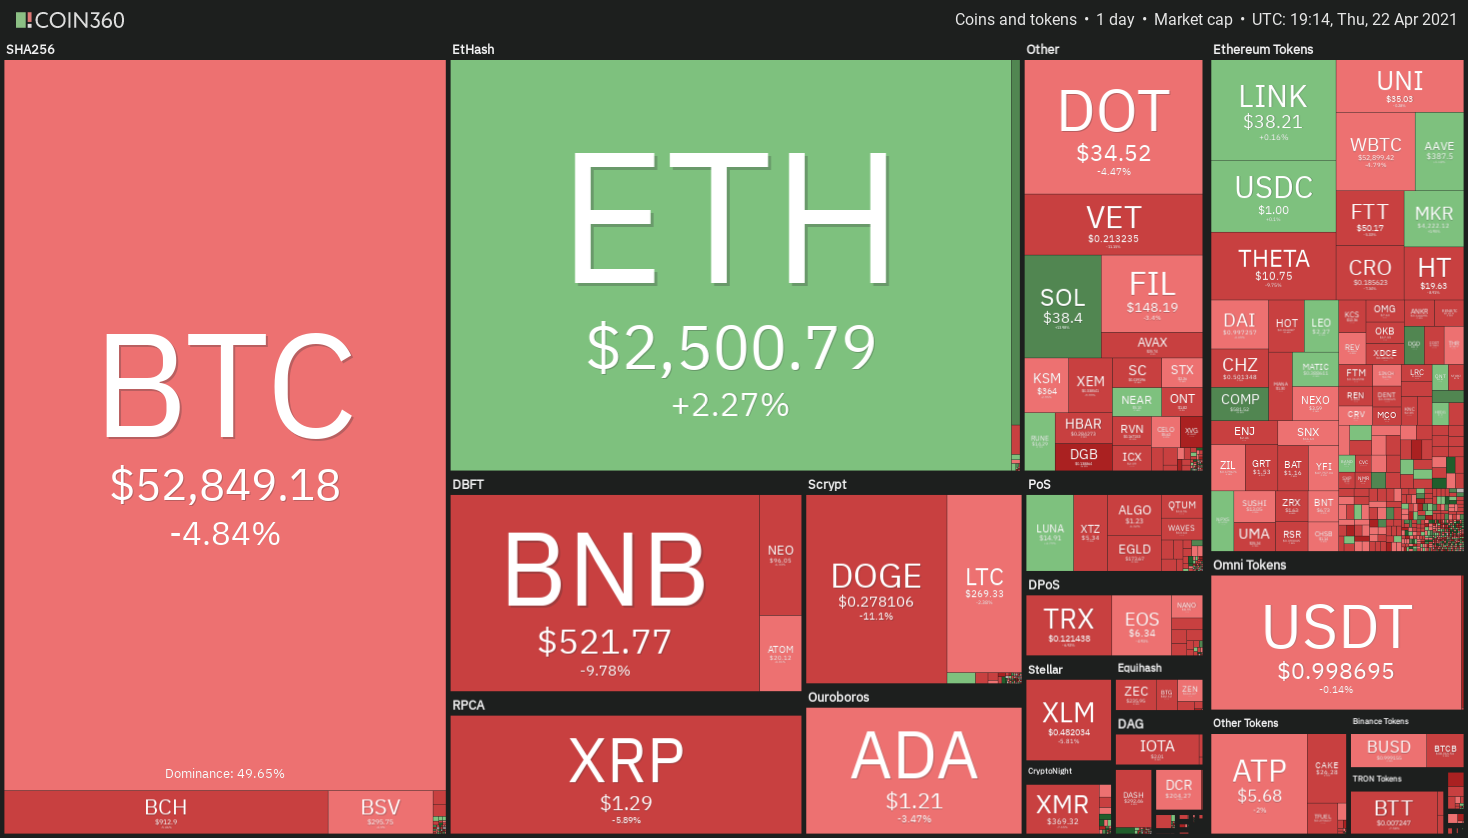 Data shows traders rushed to buy altcoins during Bitcoin's dip to $50K